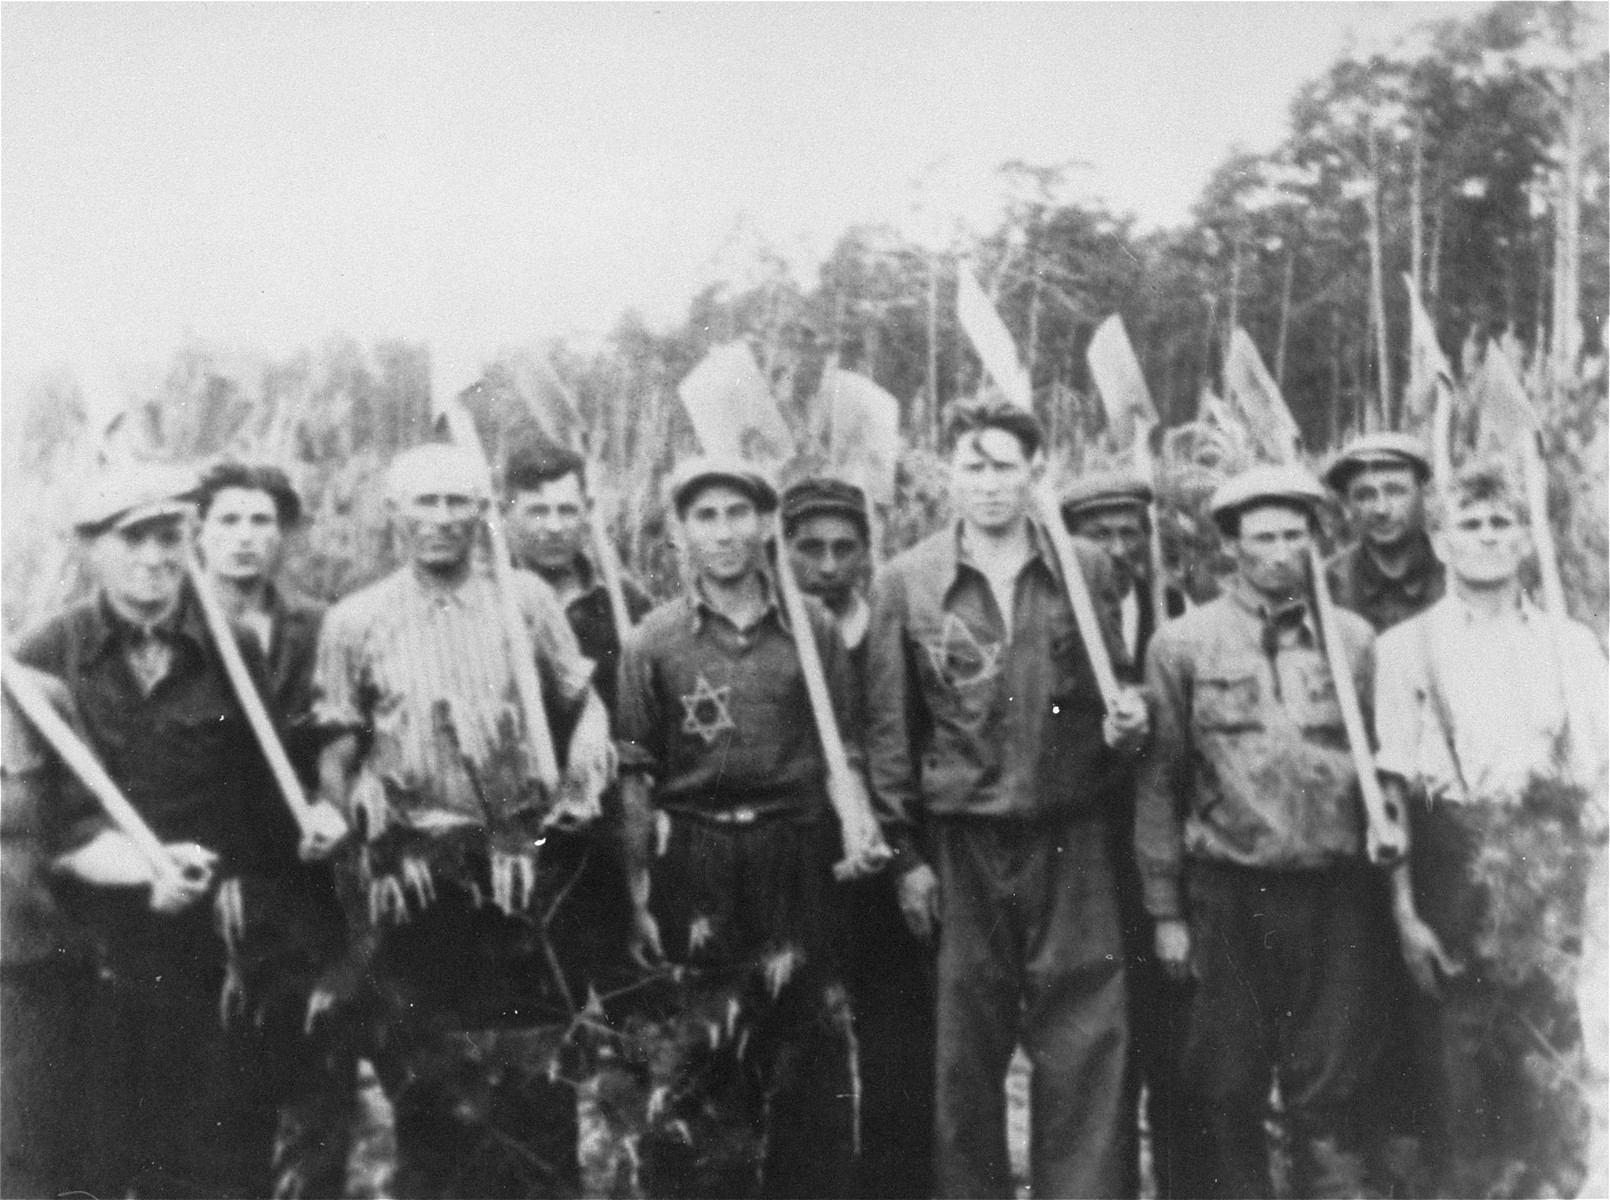 Jews in a forced labor brigade pose holding shovels in the village of Piotrkow Kujawski.